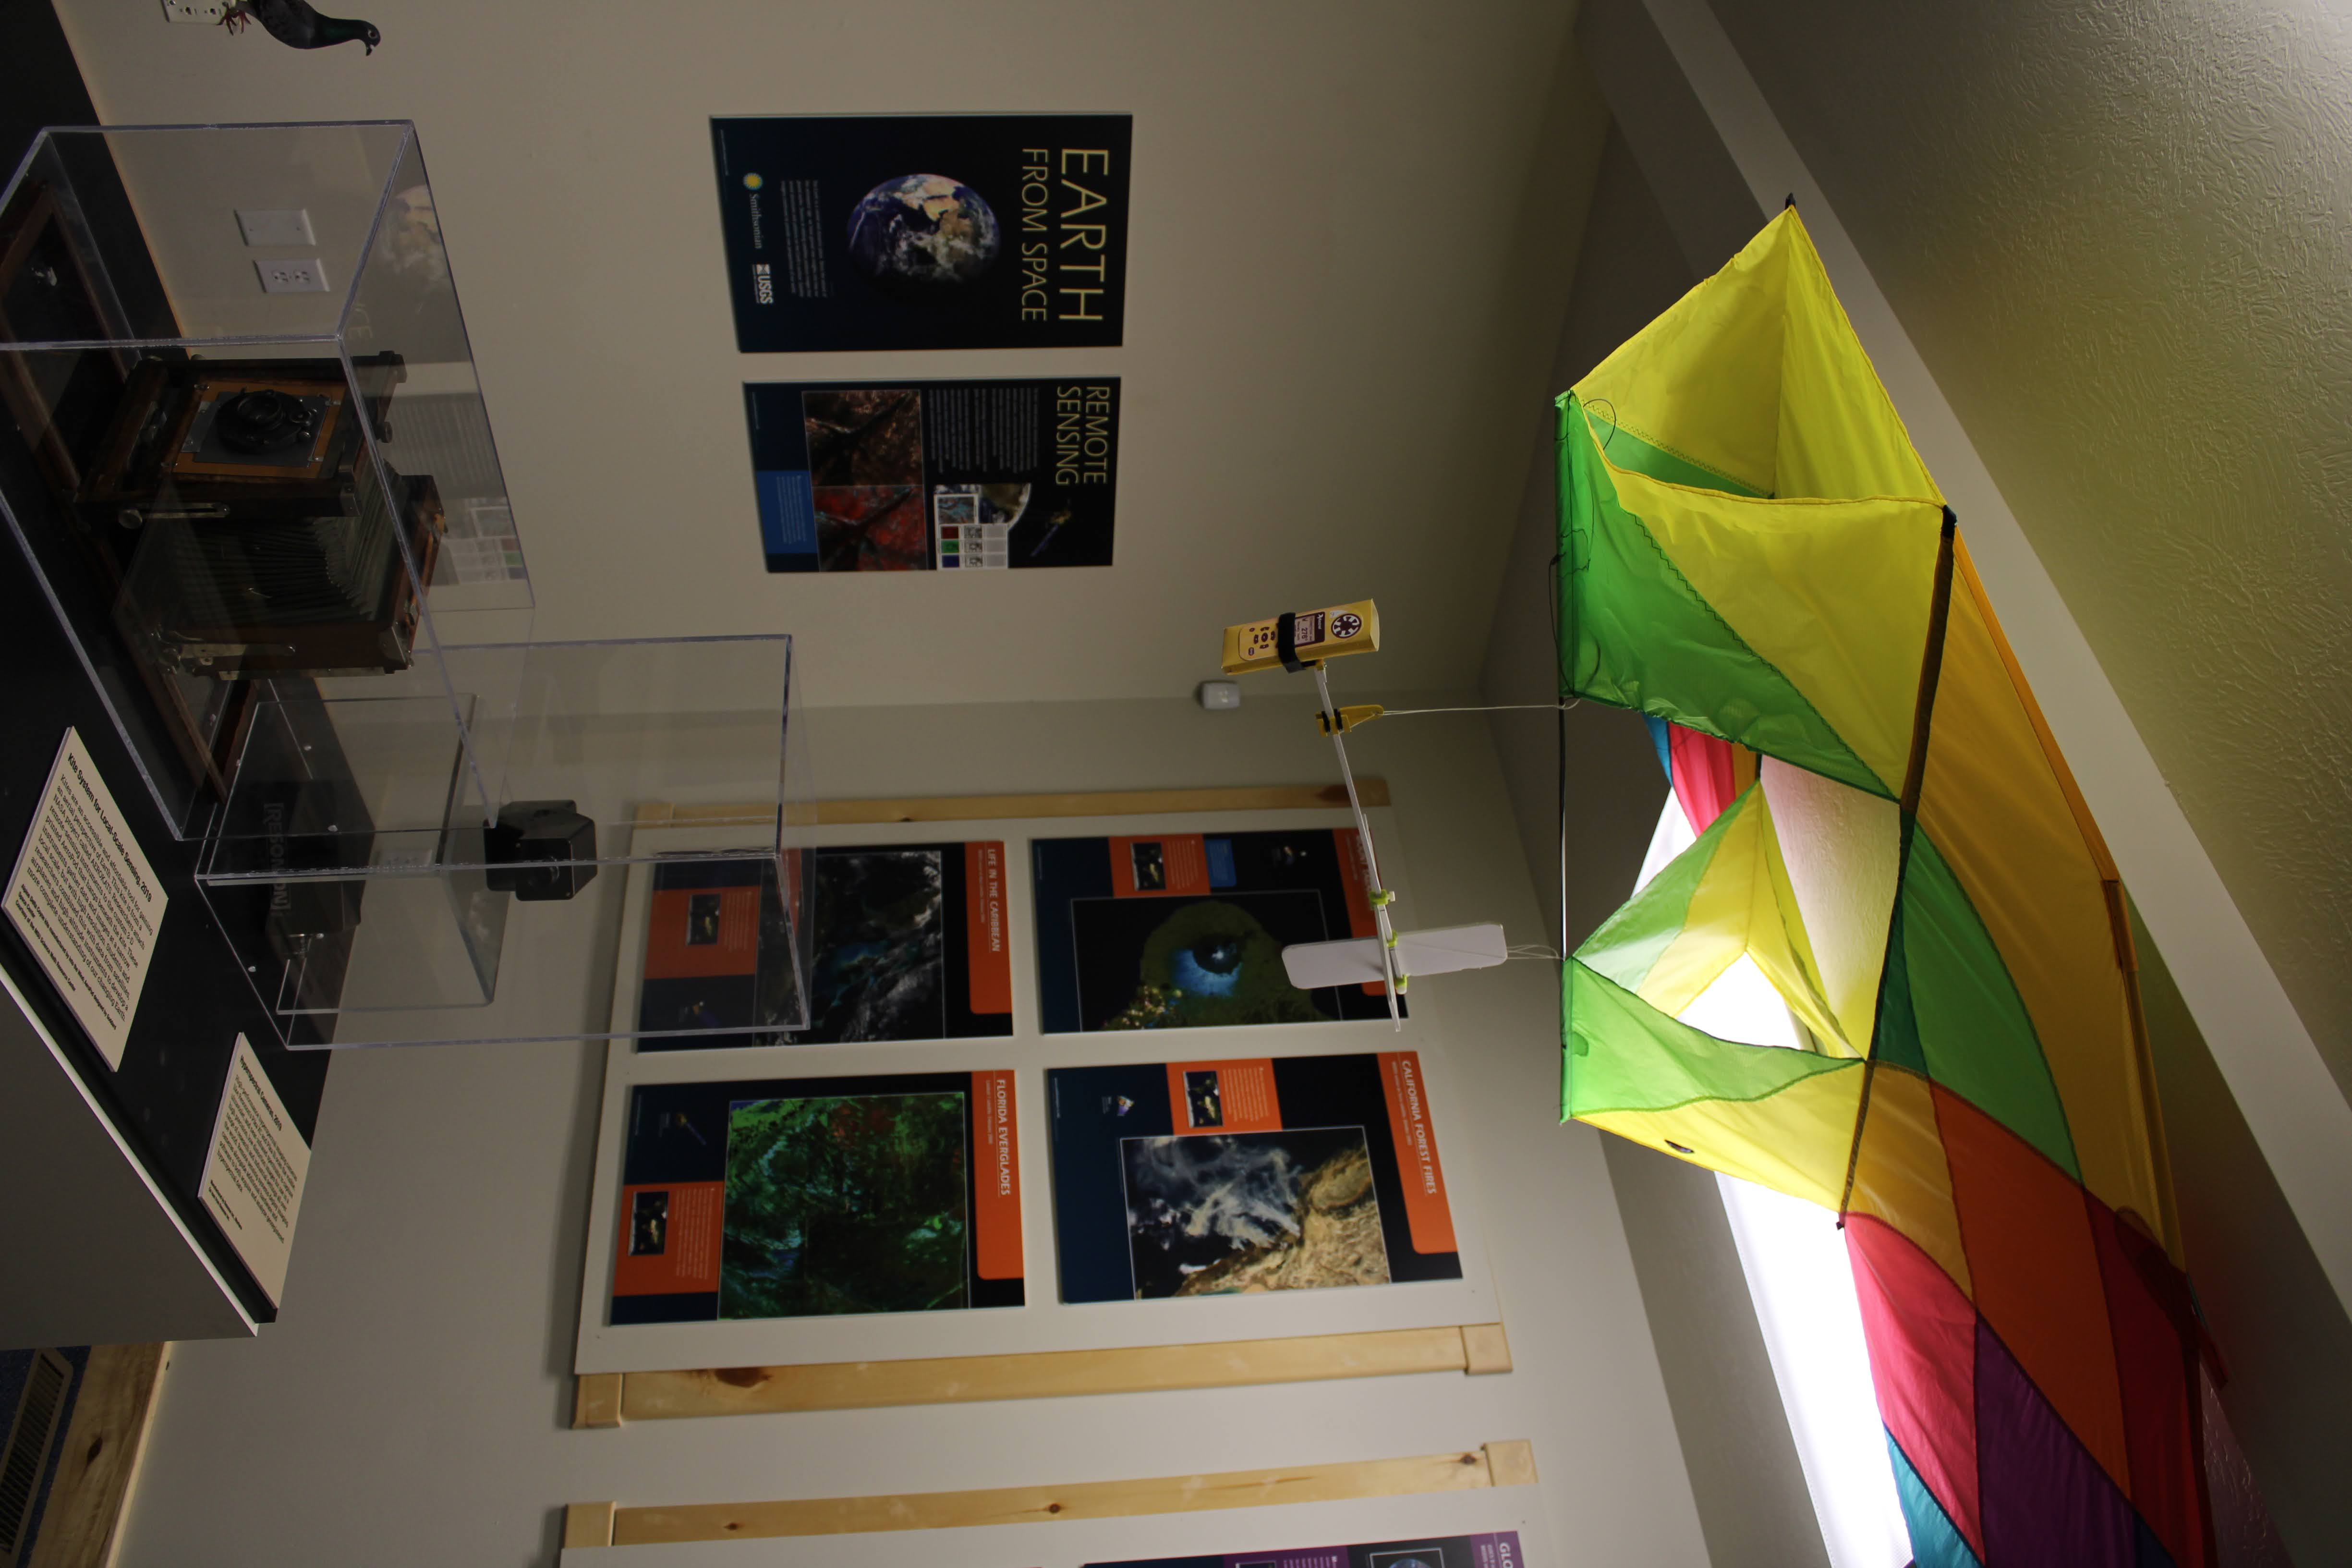 A kite hangs over the remote sensing exhibit